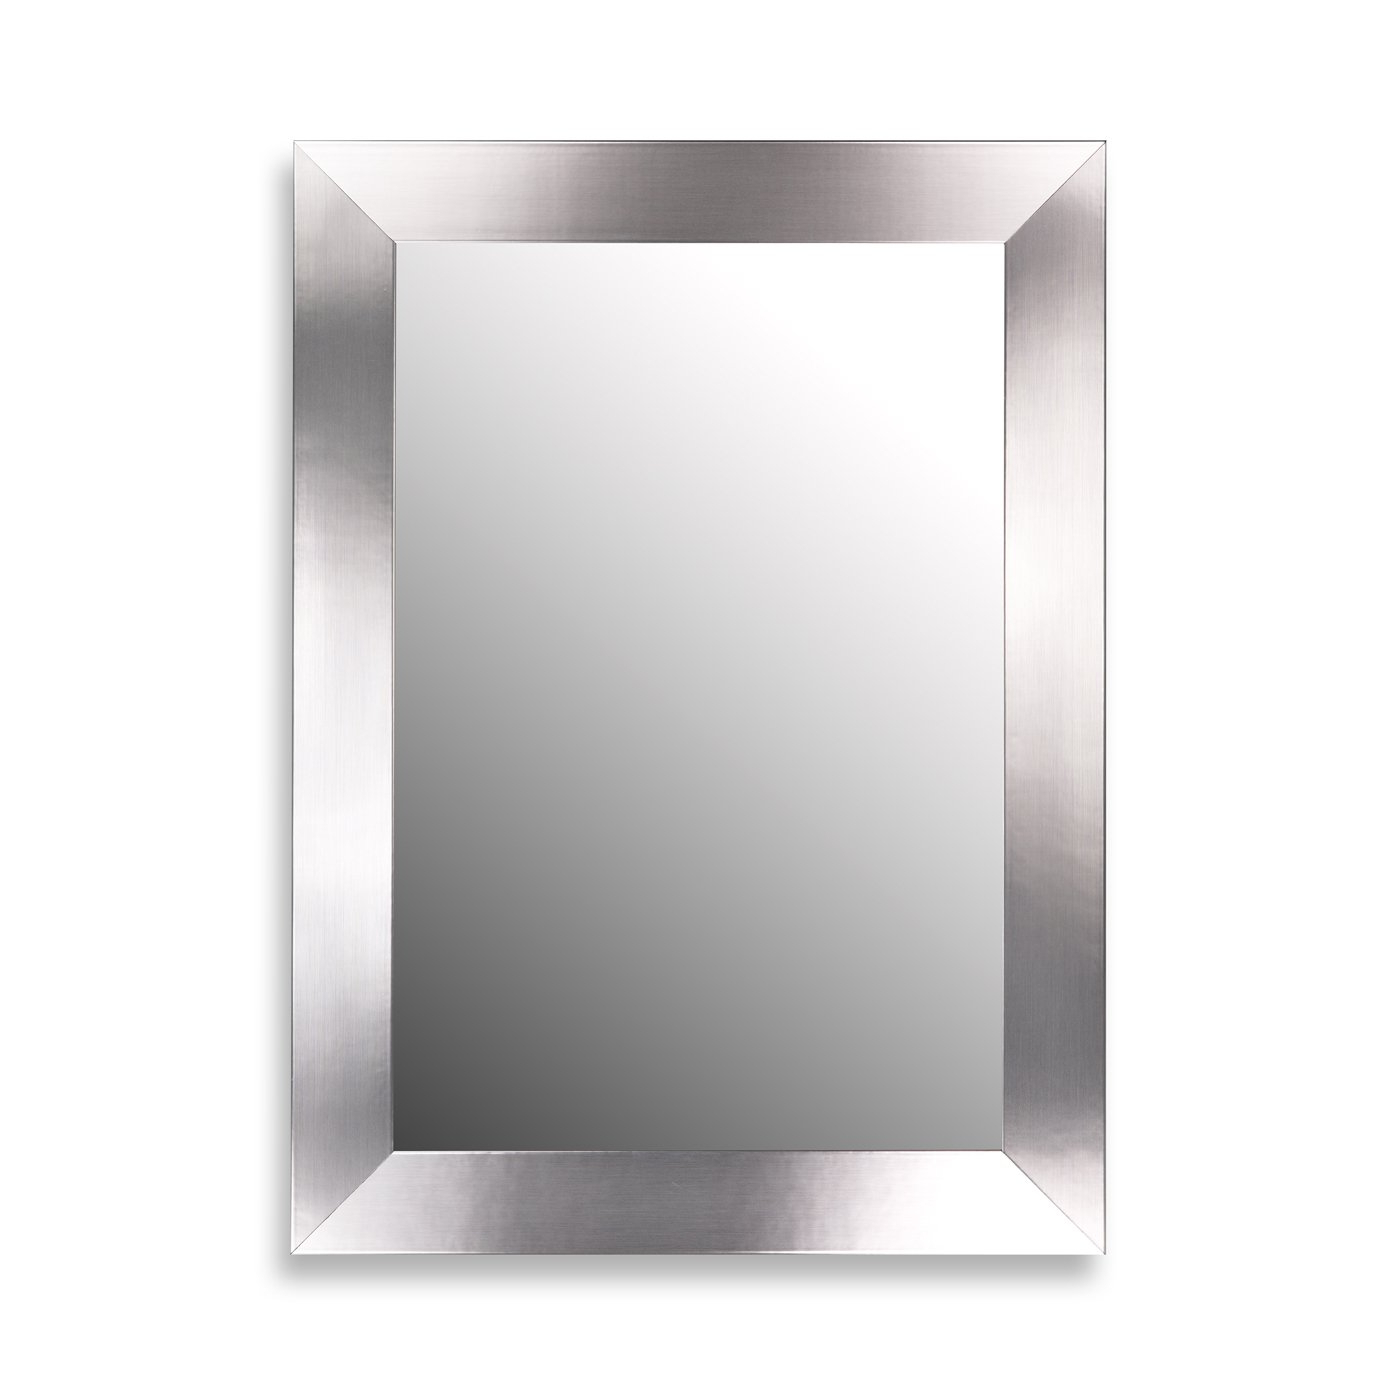 Flat Wall Mirrors With Well Known Hitchcock Butterfield 25390 Stainless Flat Wall Mirror (View 9 of 20)